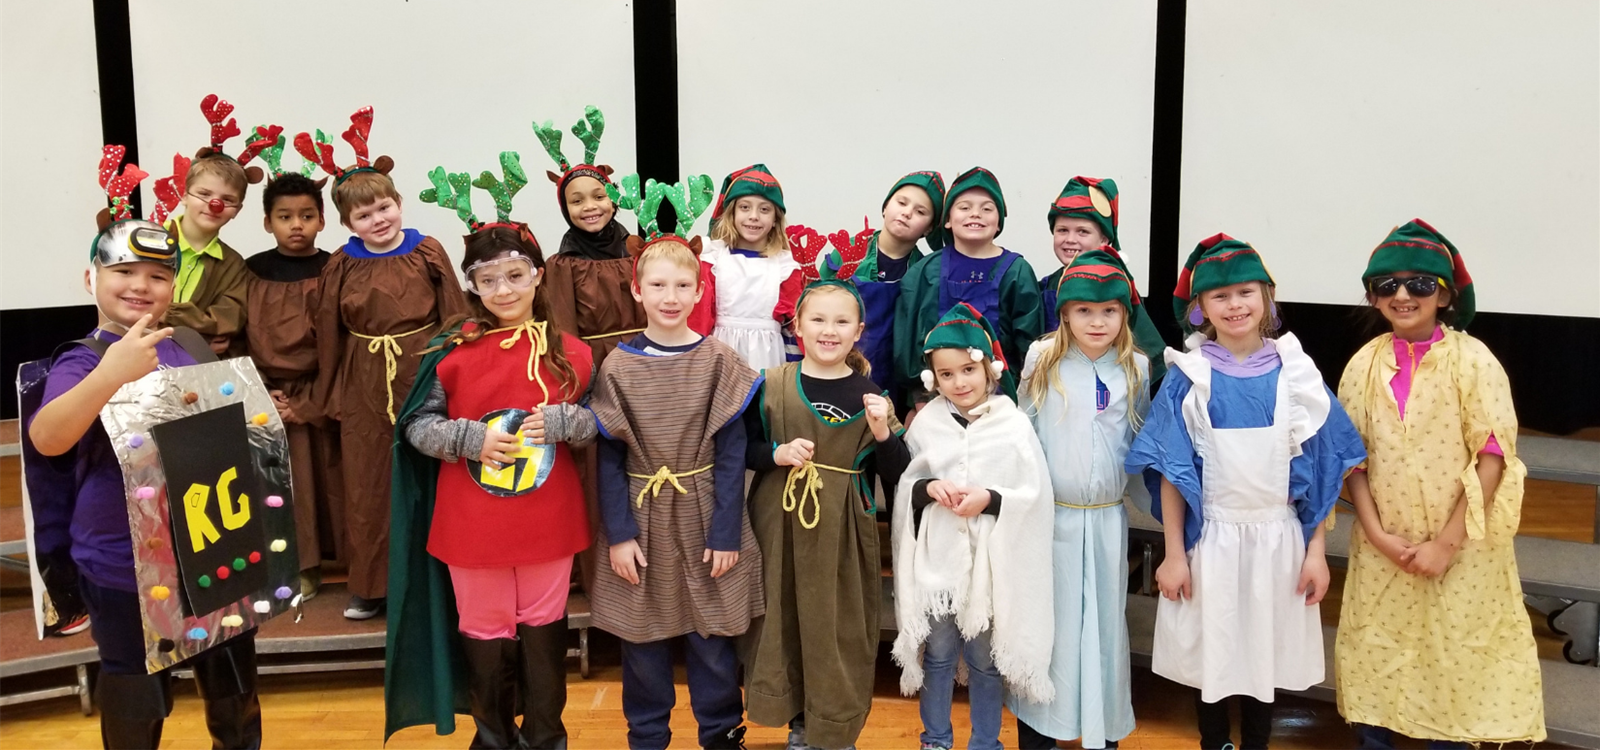 2nd grade Christmas play